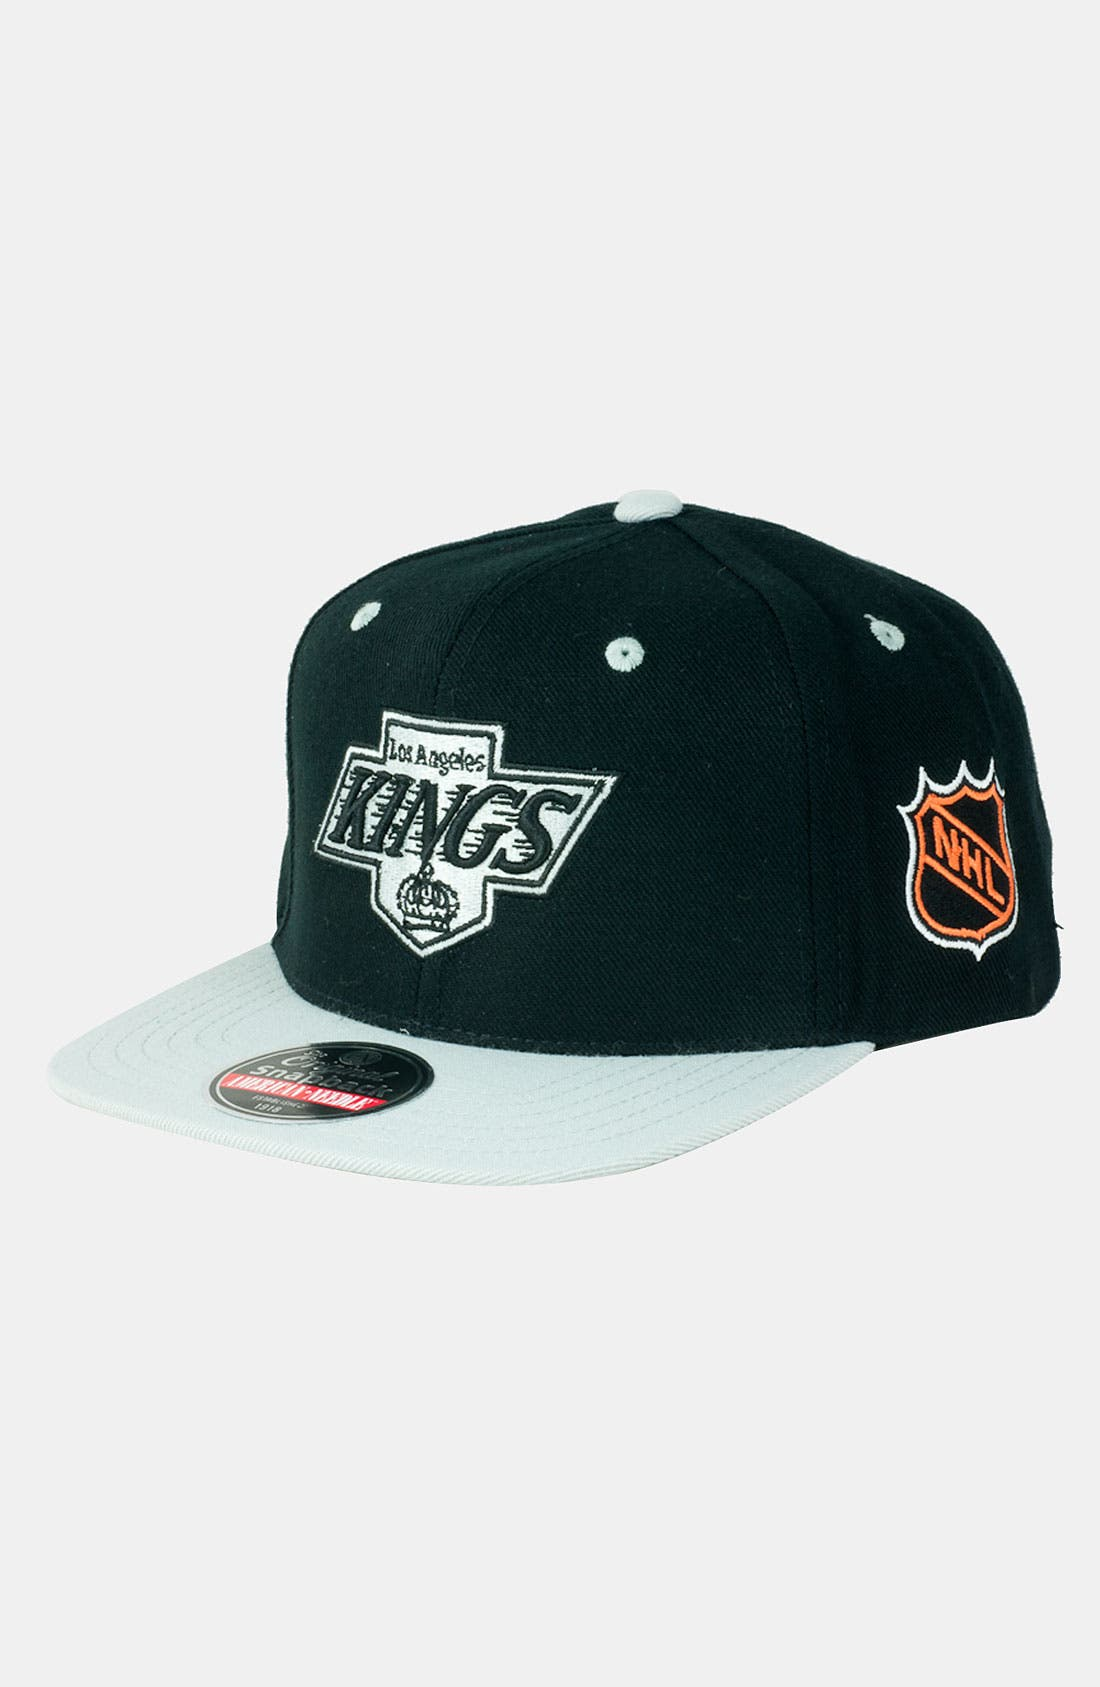 Main Image - American Needle 'Kings - Blockhead' Snapback Baseball Cap